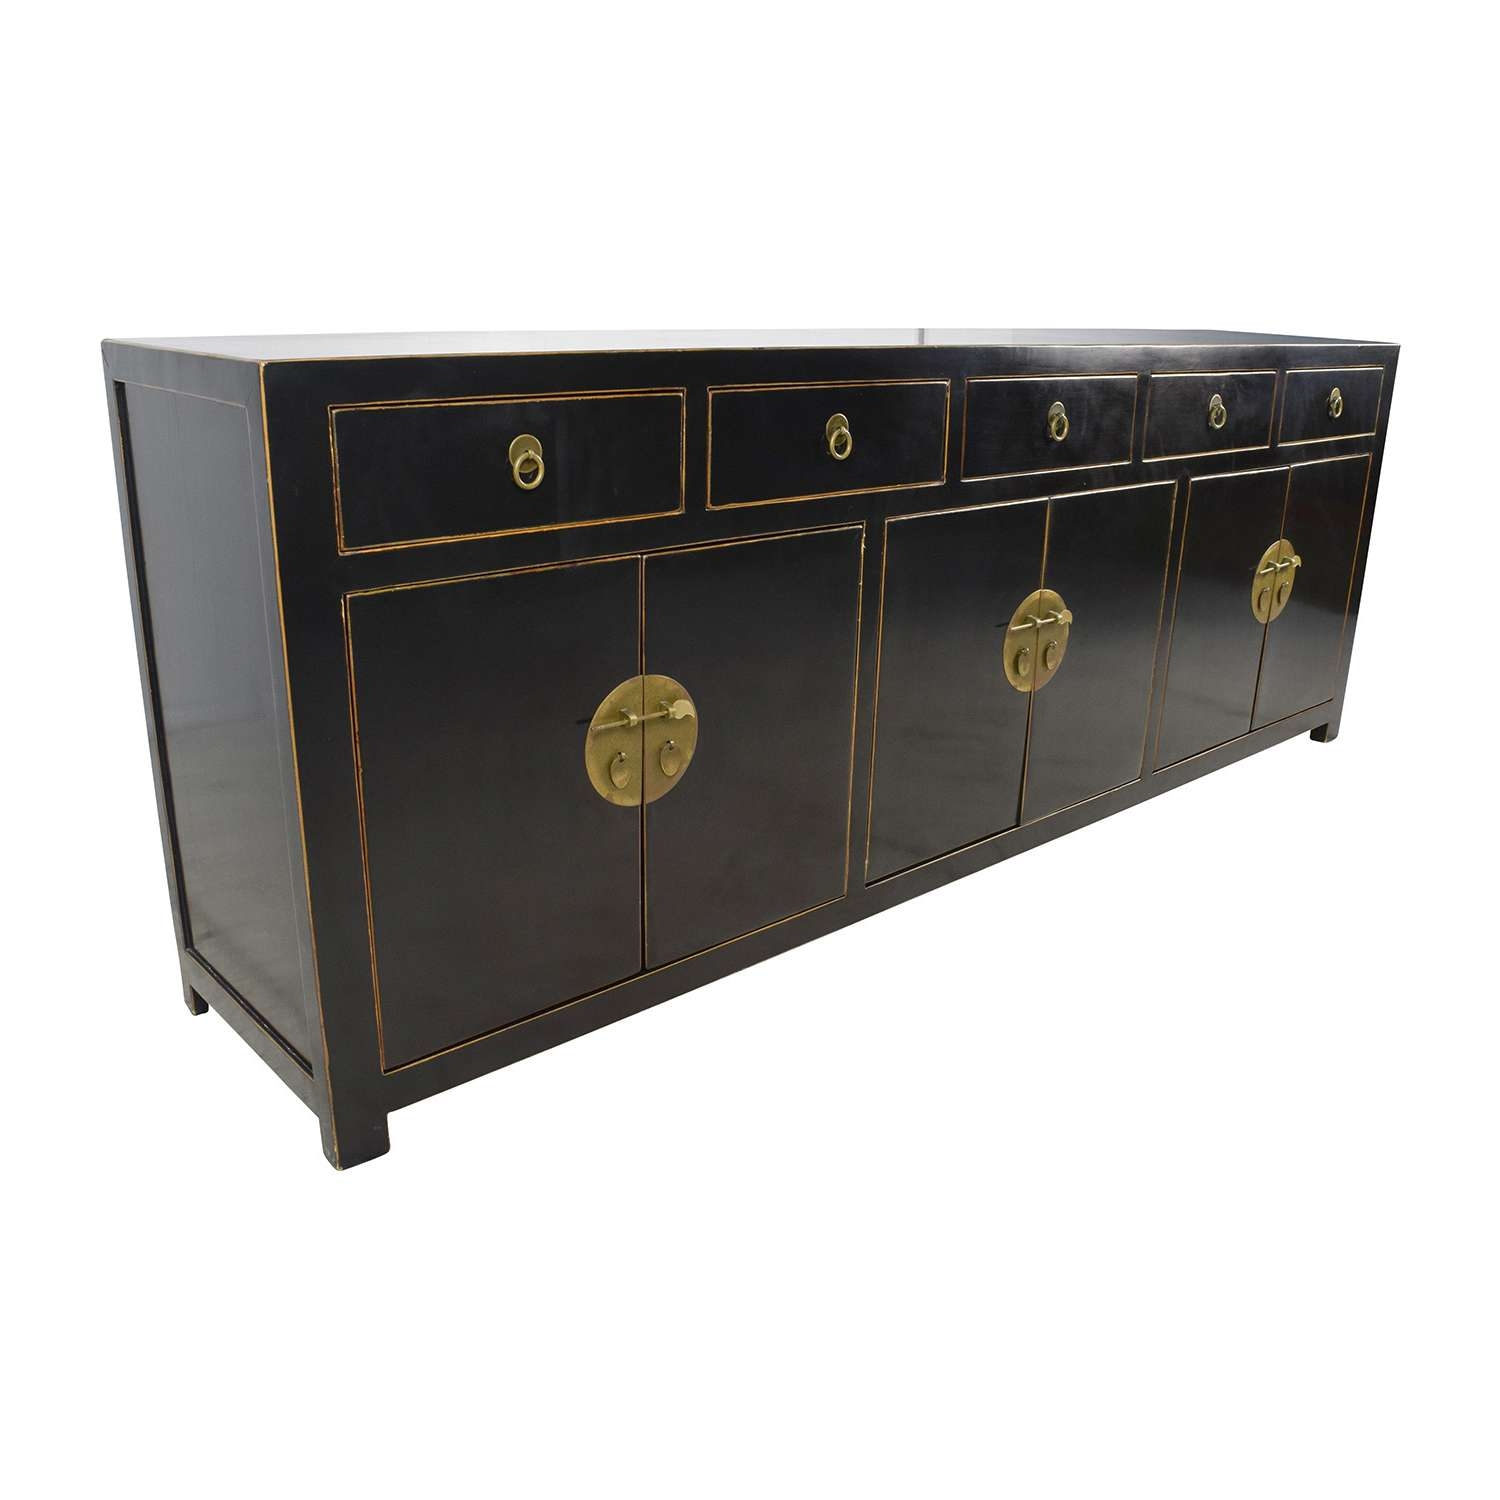 85% Off – Custom Made Black Drawer And Cabinet Sideboard / Storage Inside Black Sideboards Cabinets (View 4 of 20)